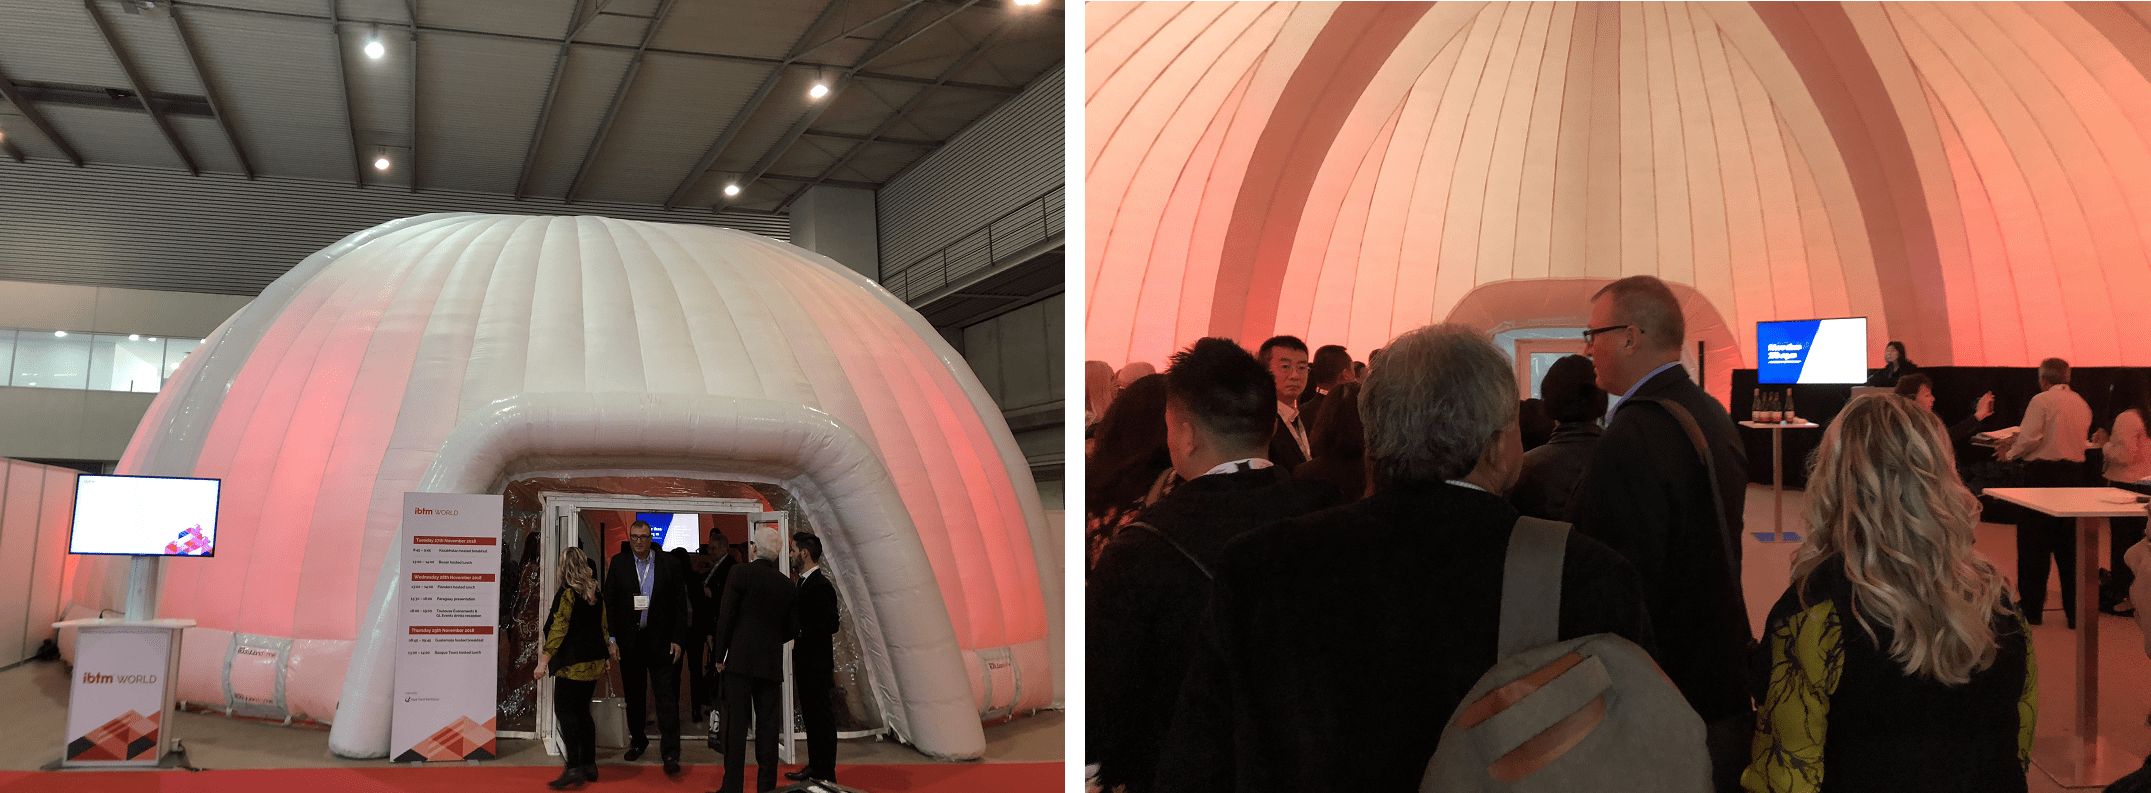 Inflatable Structures - Temporary Exhibition Structures